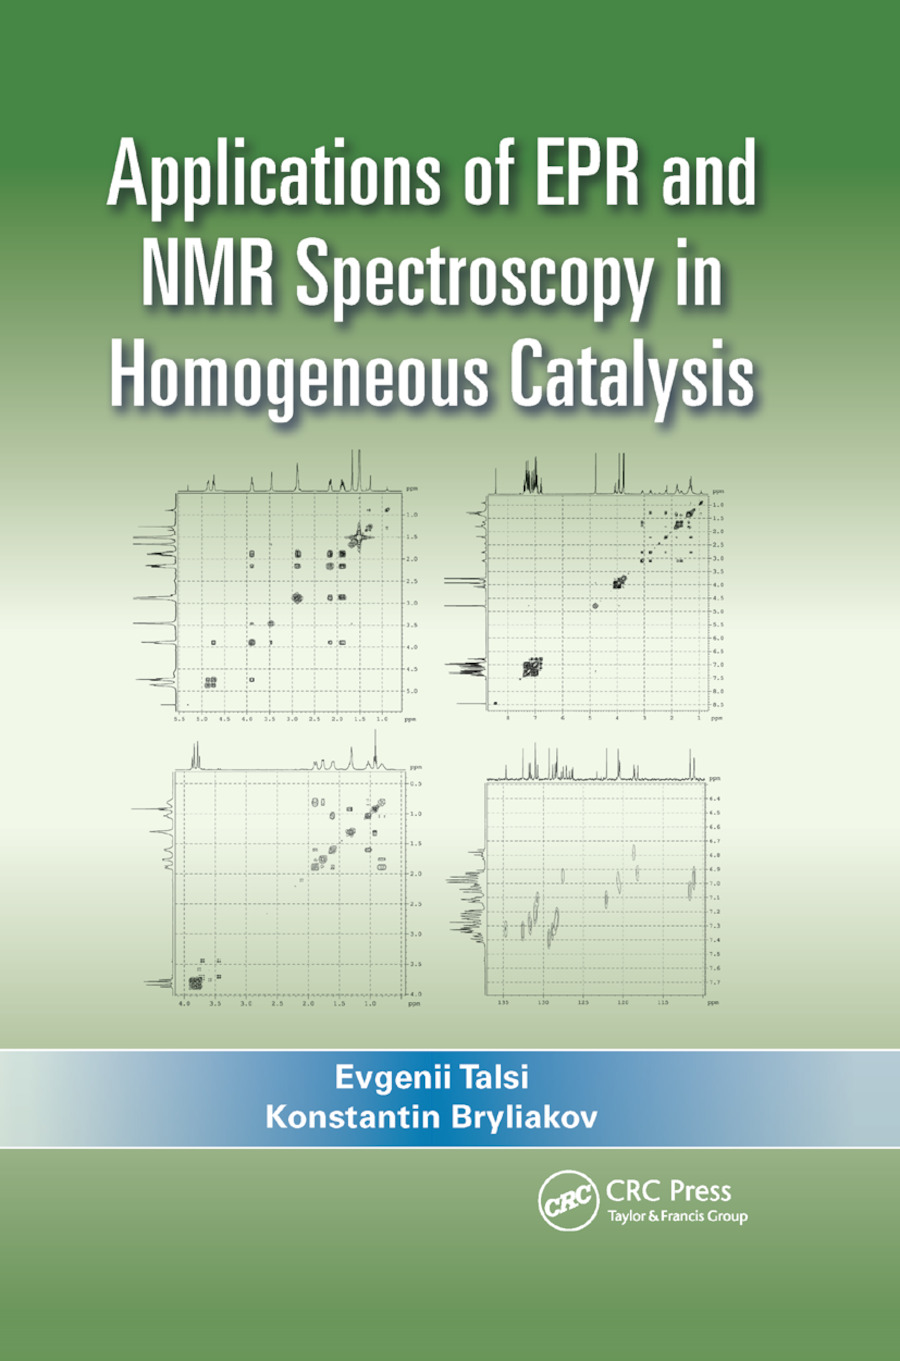 Applications of EPR and NMR Spectroscopy in Homogeneous Catalysis book cover